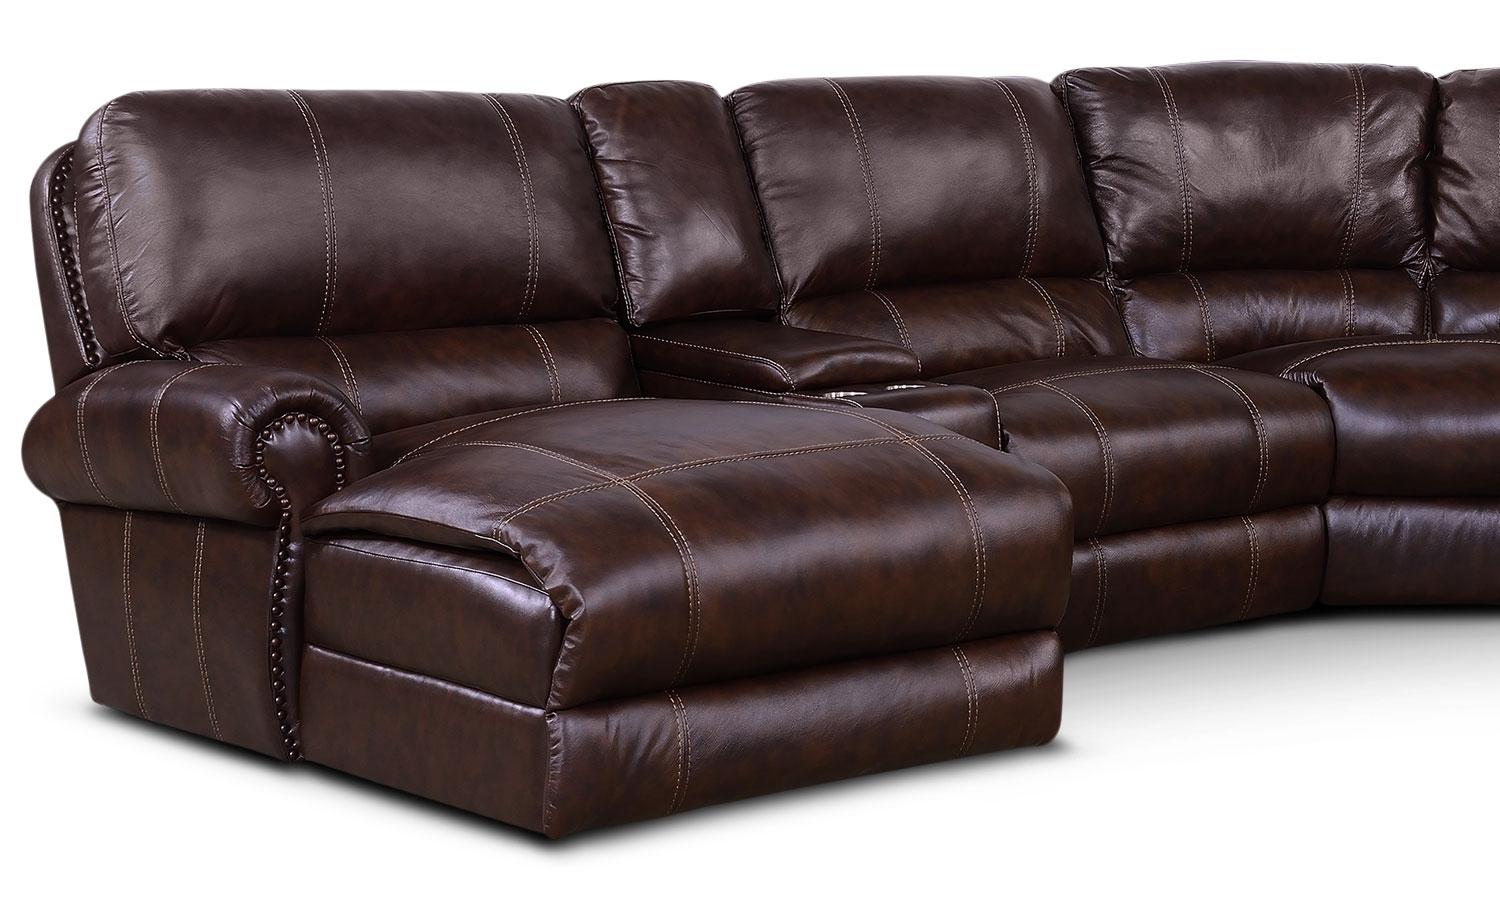 Dartmouth 6-Piece Power Reclining Sectional W/ Left-Facing Chaise with regard to Norfolk Chocolate 3 Piece Sectionals With Raf Chaise (Image 10 of 30)